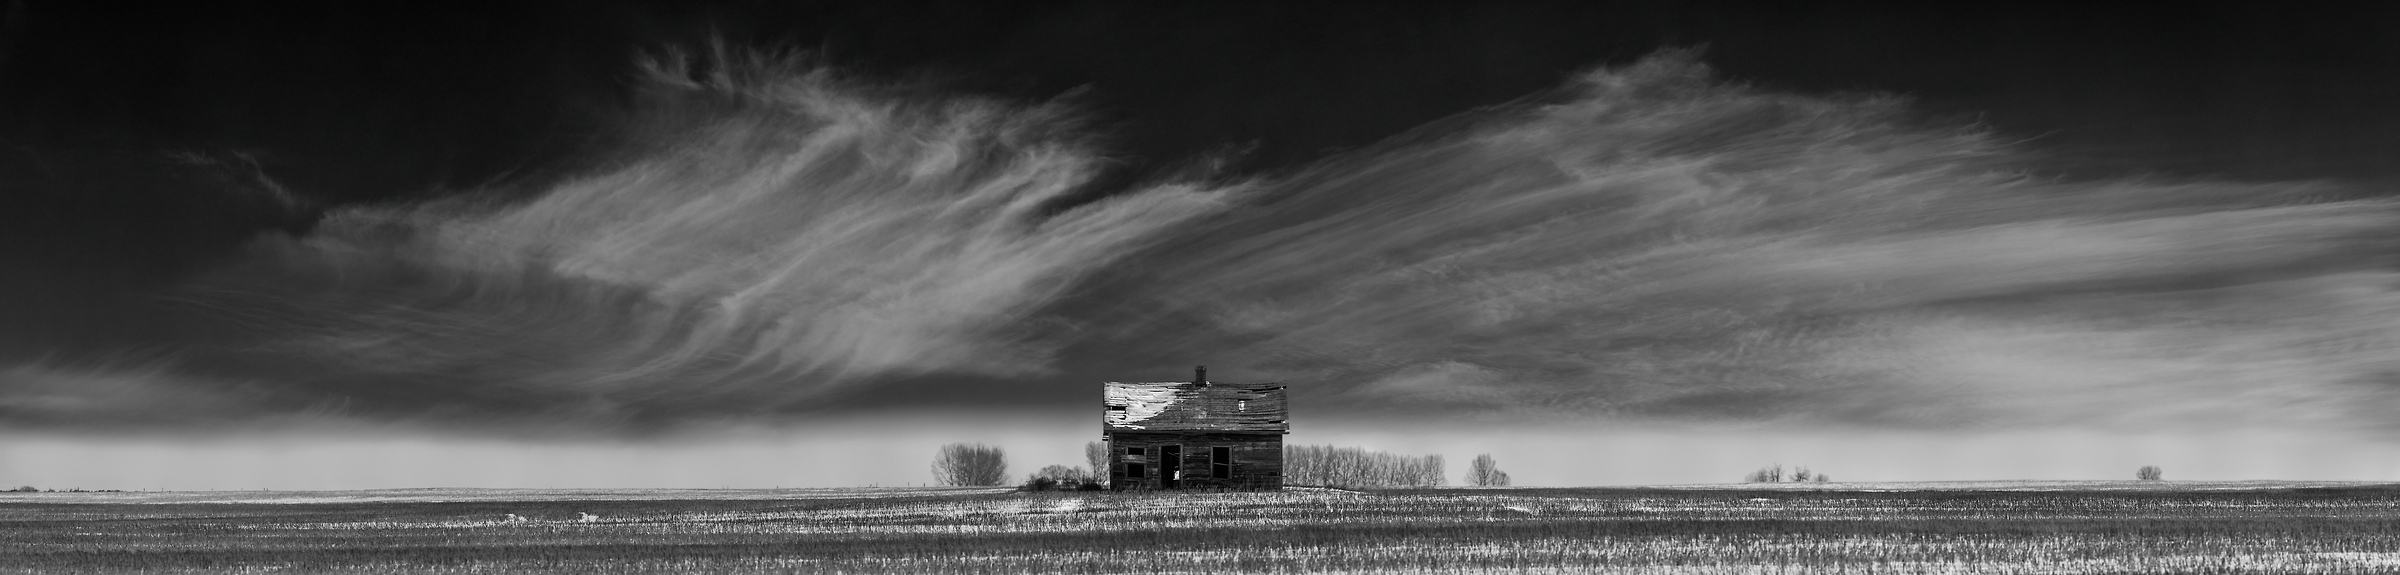 1,647 megapixels! A very high resolution, black and white VAST photo print of an abandoned house on a prairie with snow; landscape photograph created by Scott Dimond in Wheatland County, Alberta, Canada